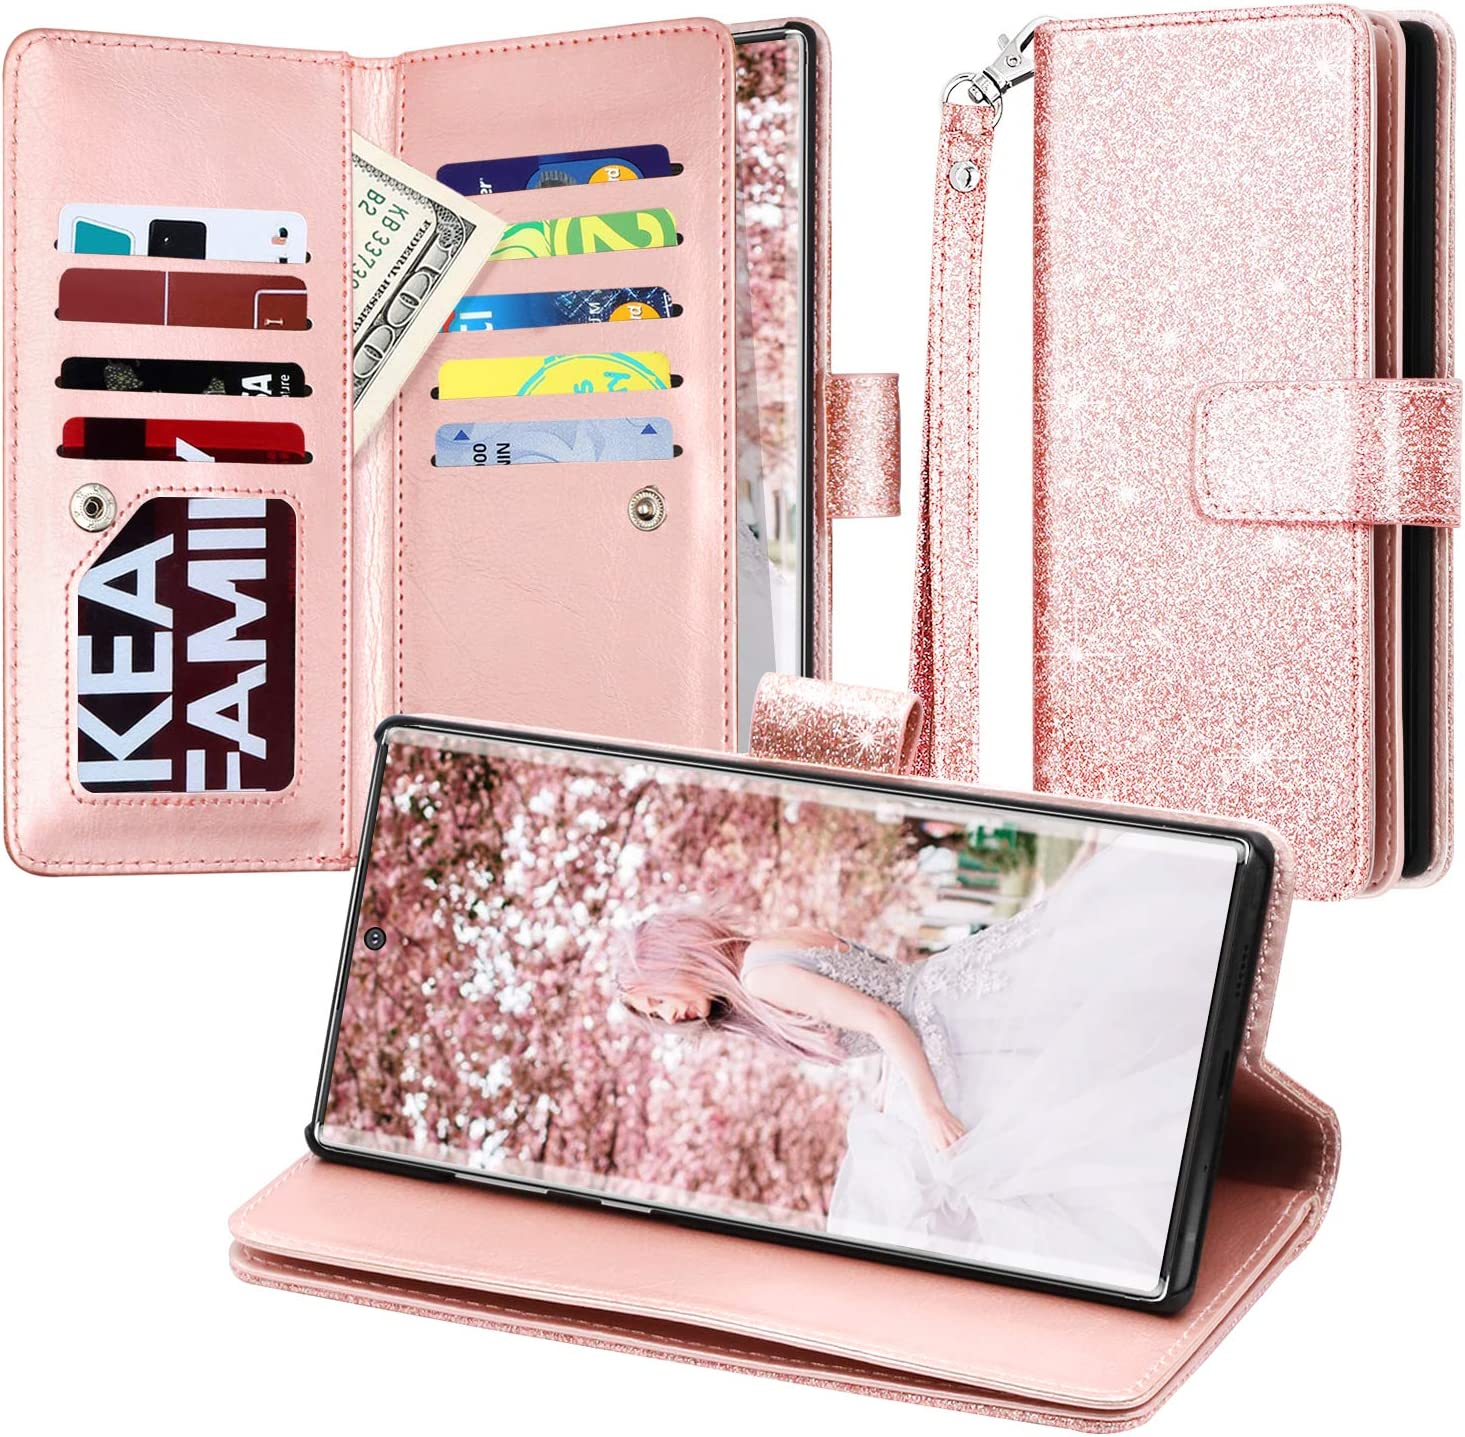 Flip Case Fit for Samsung Galaxy Note 10 plus Card Holders Kickstand Luxury Leather Cover Wallet for Samsung Galaxy Note 10 plus